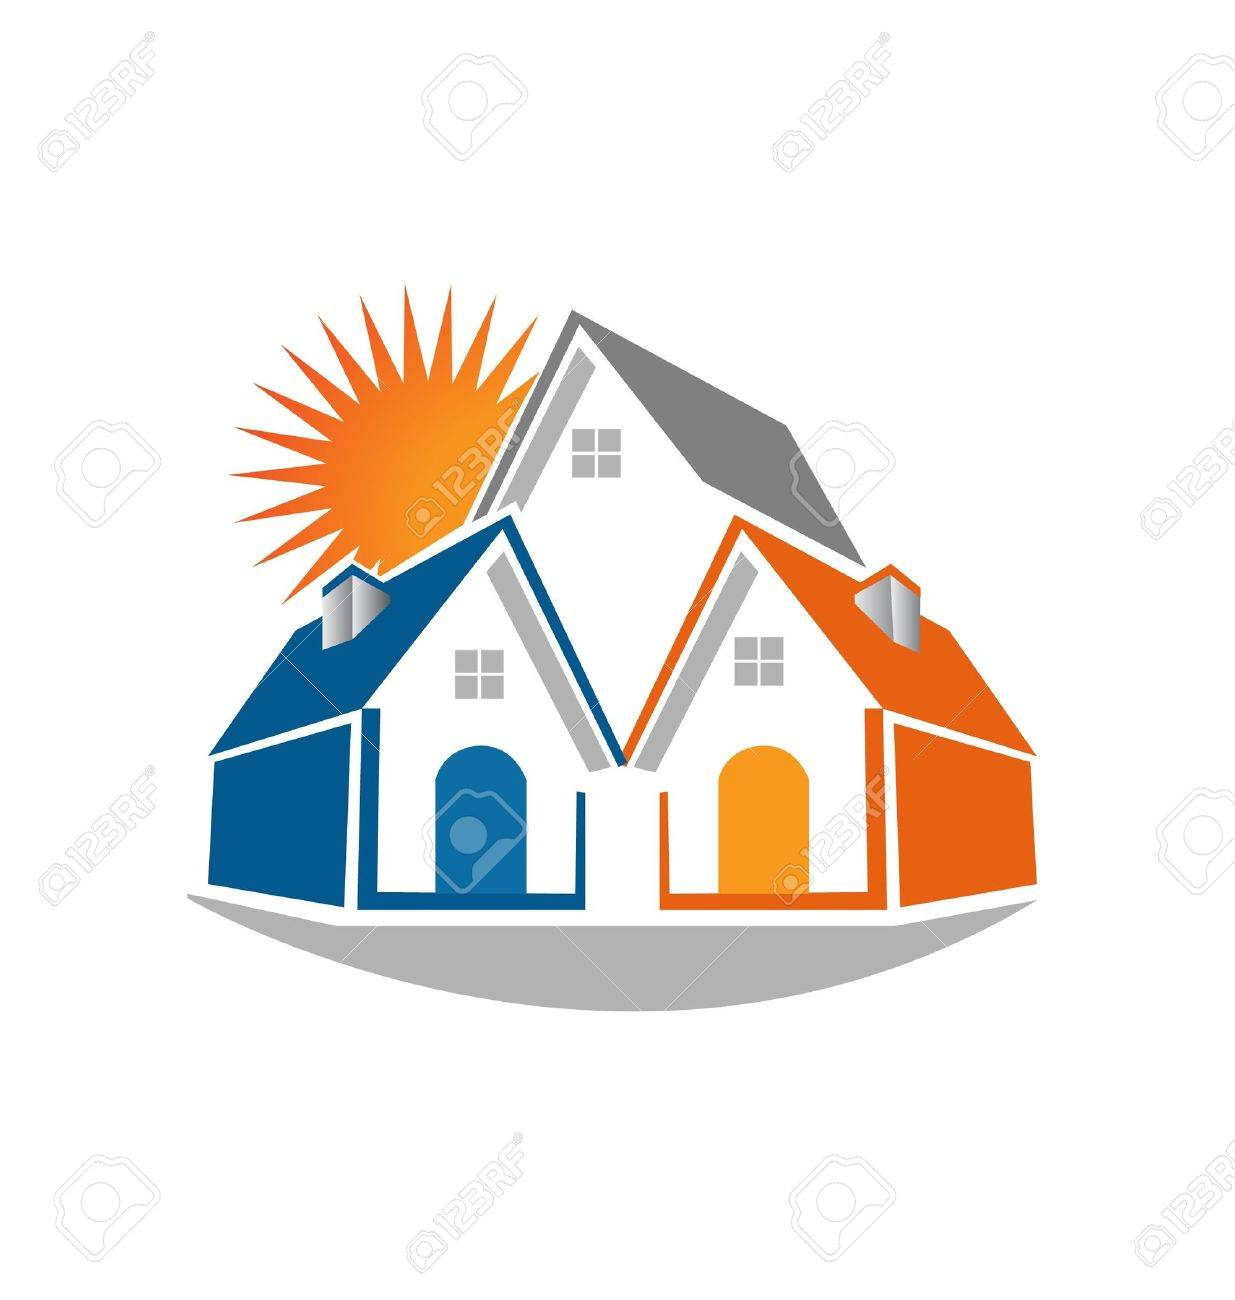 Real estate houses and sun icon illustration Stock Vector - 20743613